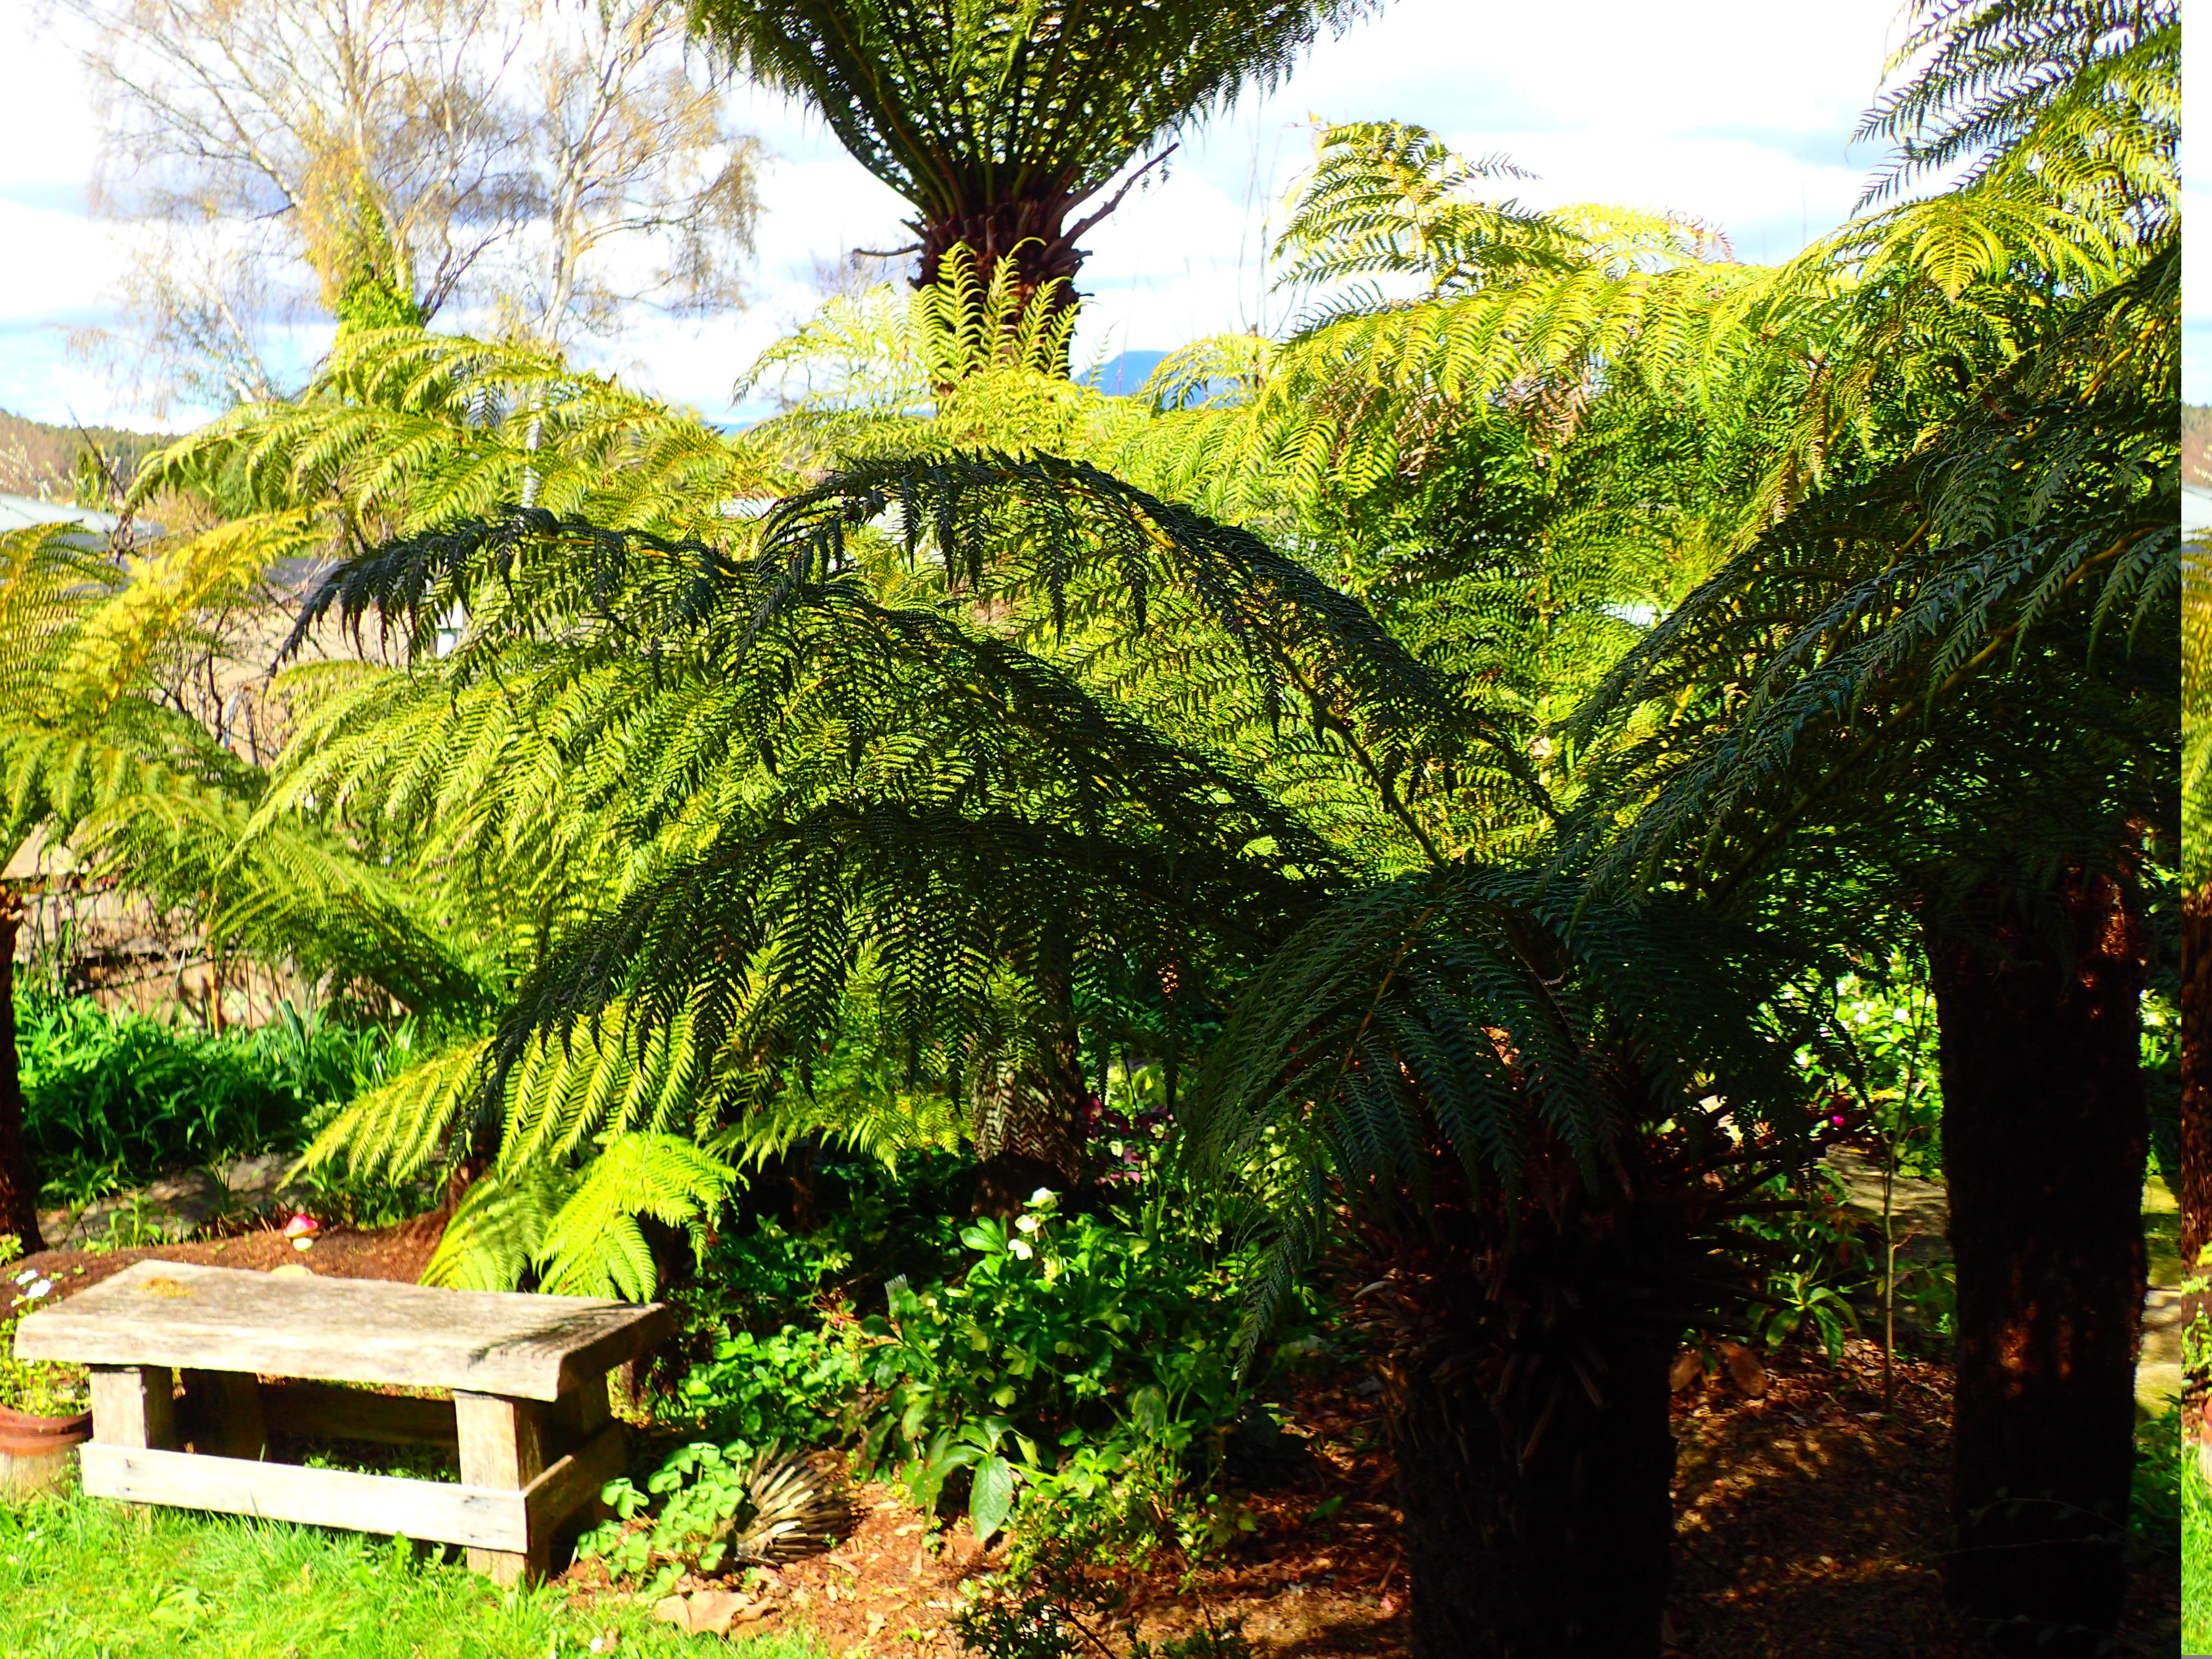 A shady spot full of tree ferns near the Garden Suite in the heritage garden of Blakes Manor.